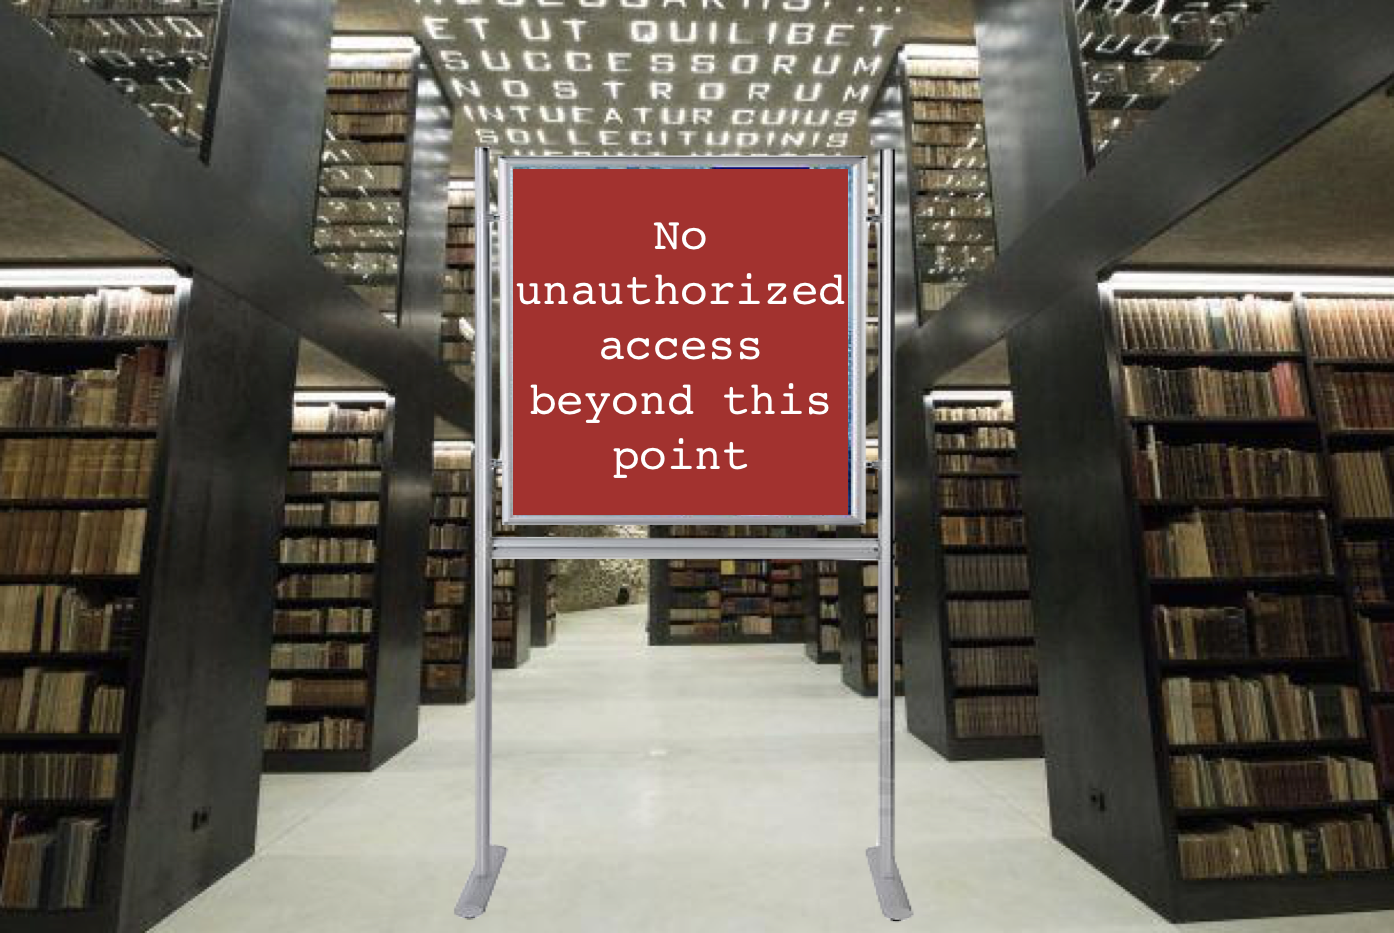 No unauthorized access